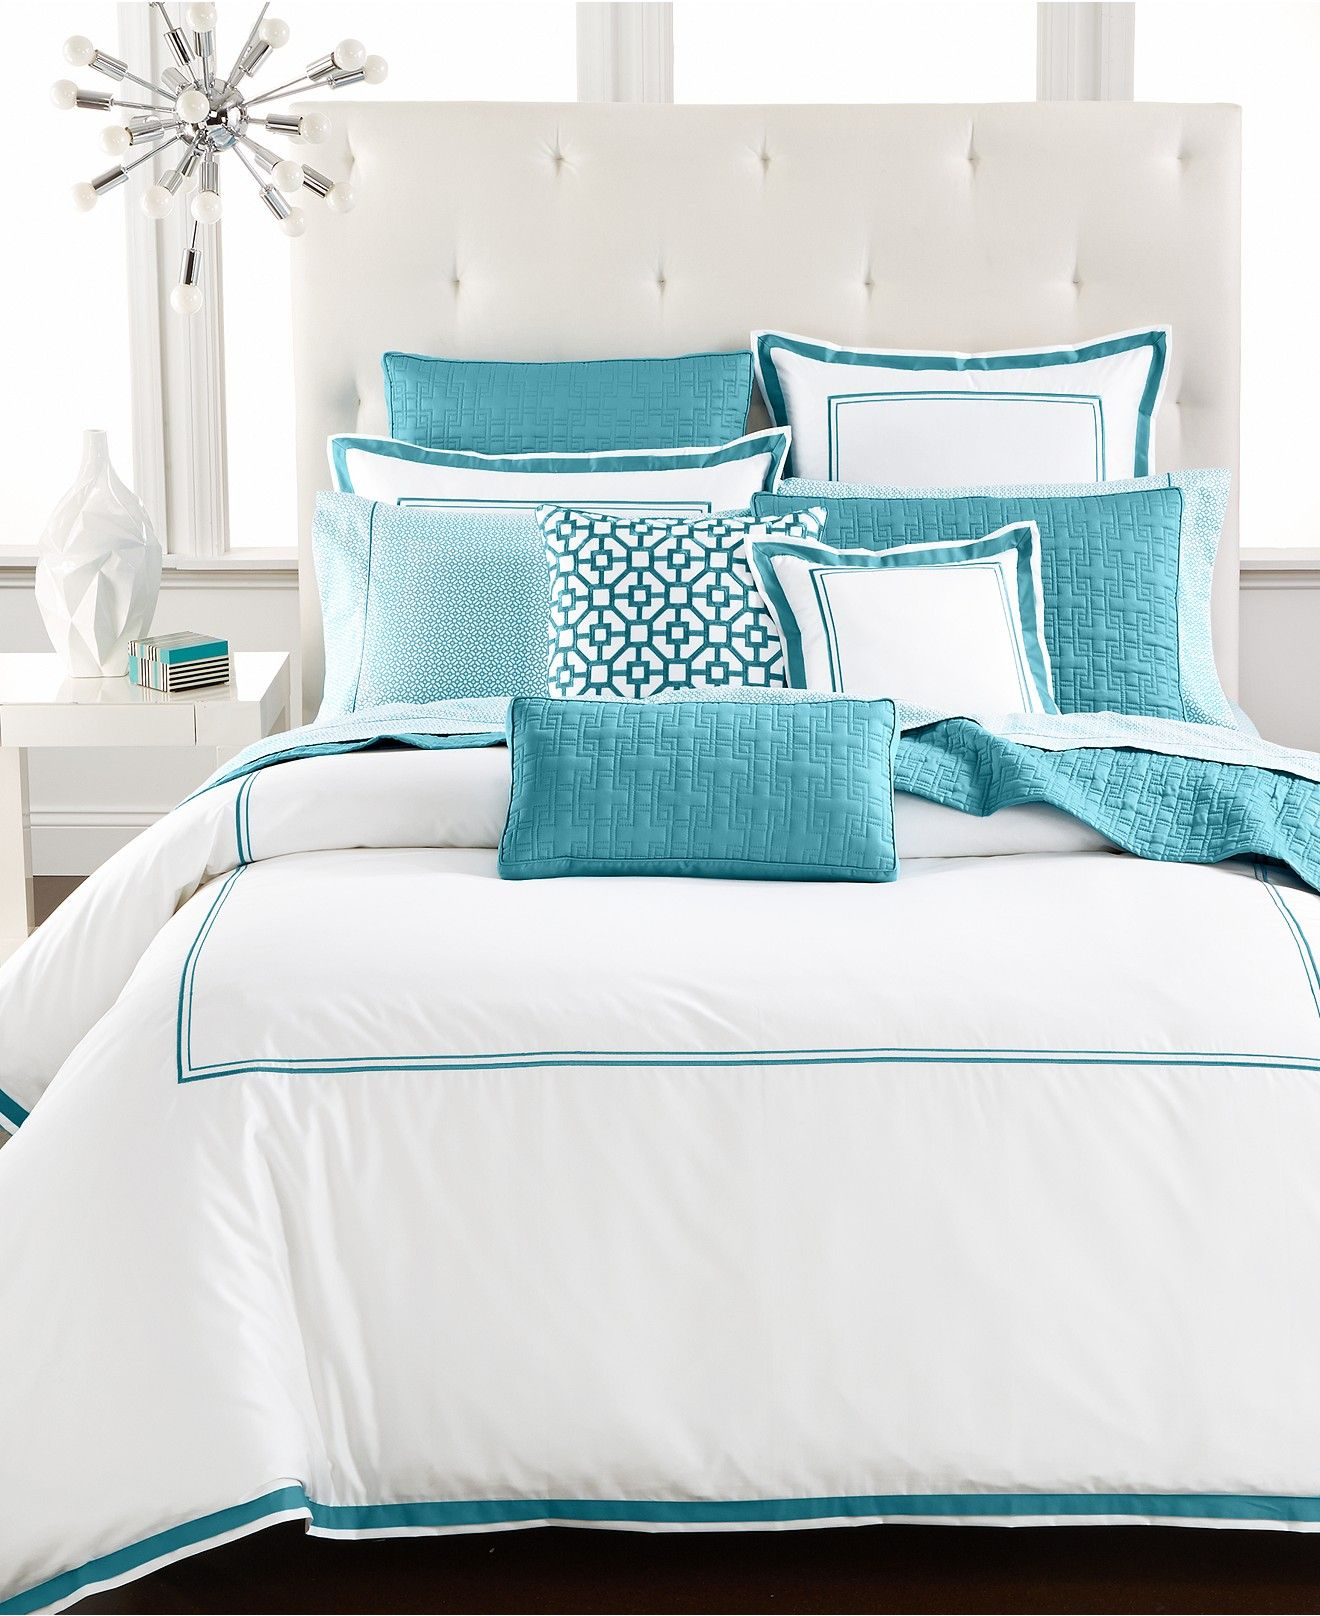 Hotel Collection Frames: Hotel Collection Embroidered Aqua Frame Bedding Collection